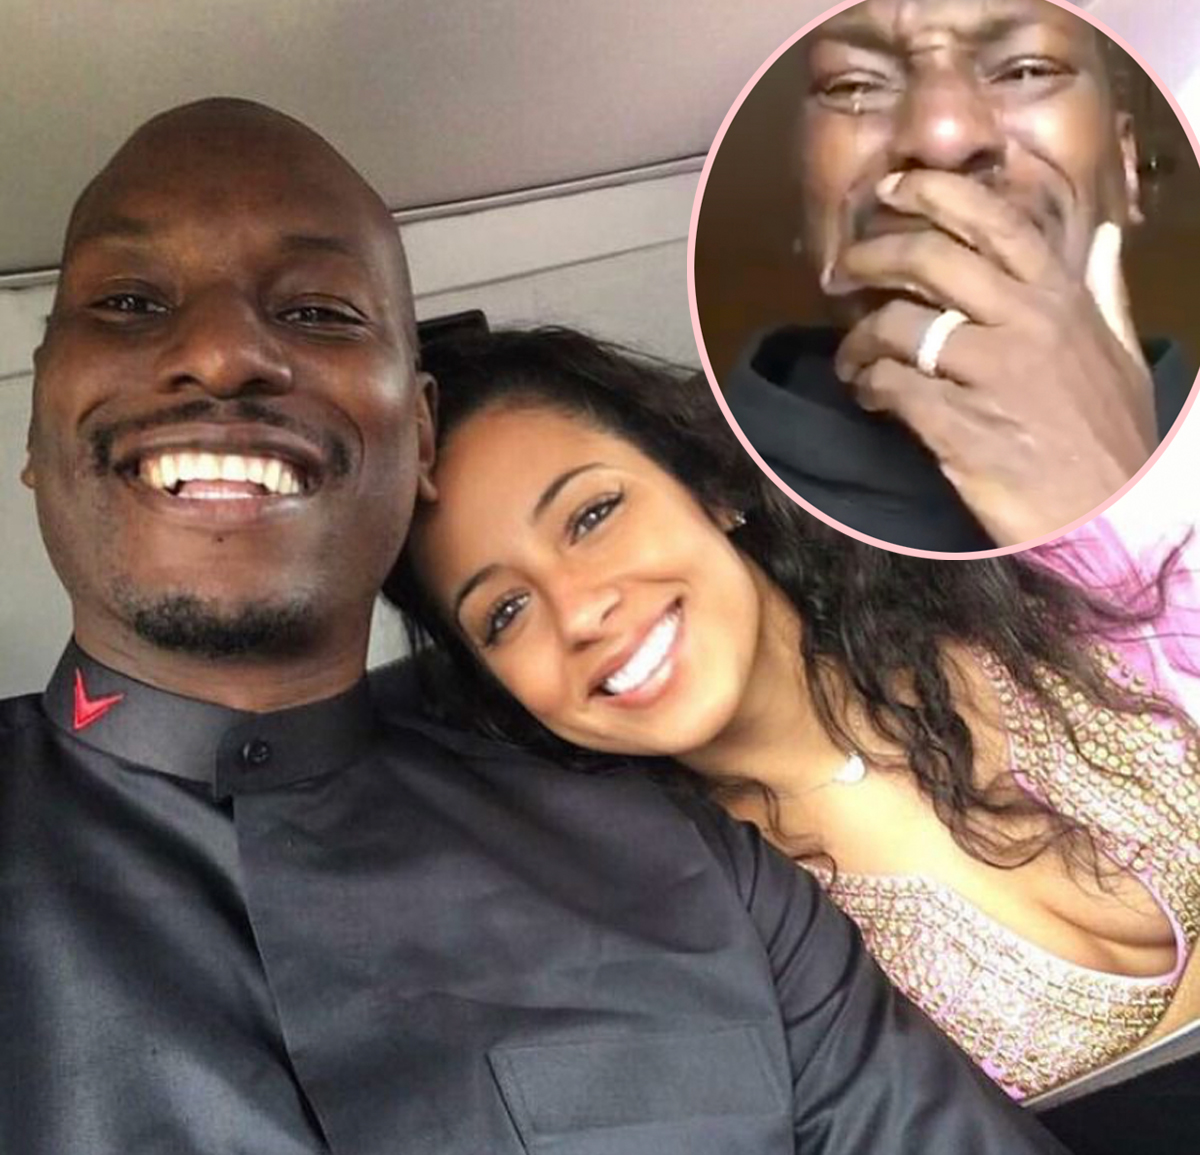 Tyrese Splits With Wife Samantha After 4 Years — And Blames It On 'Black Families' & 'Broken Homes'?!